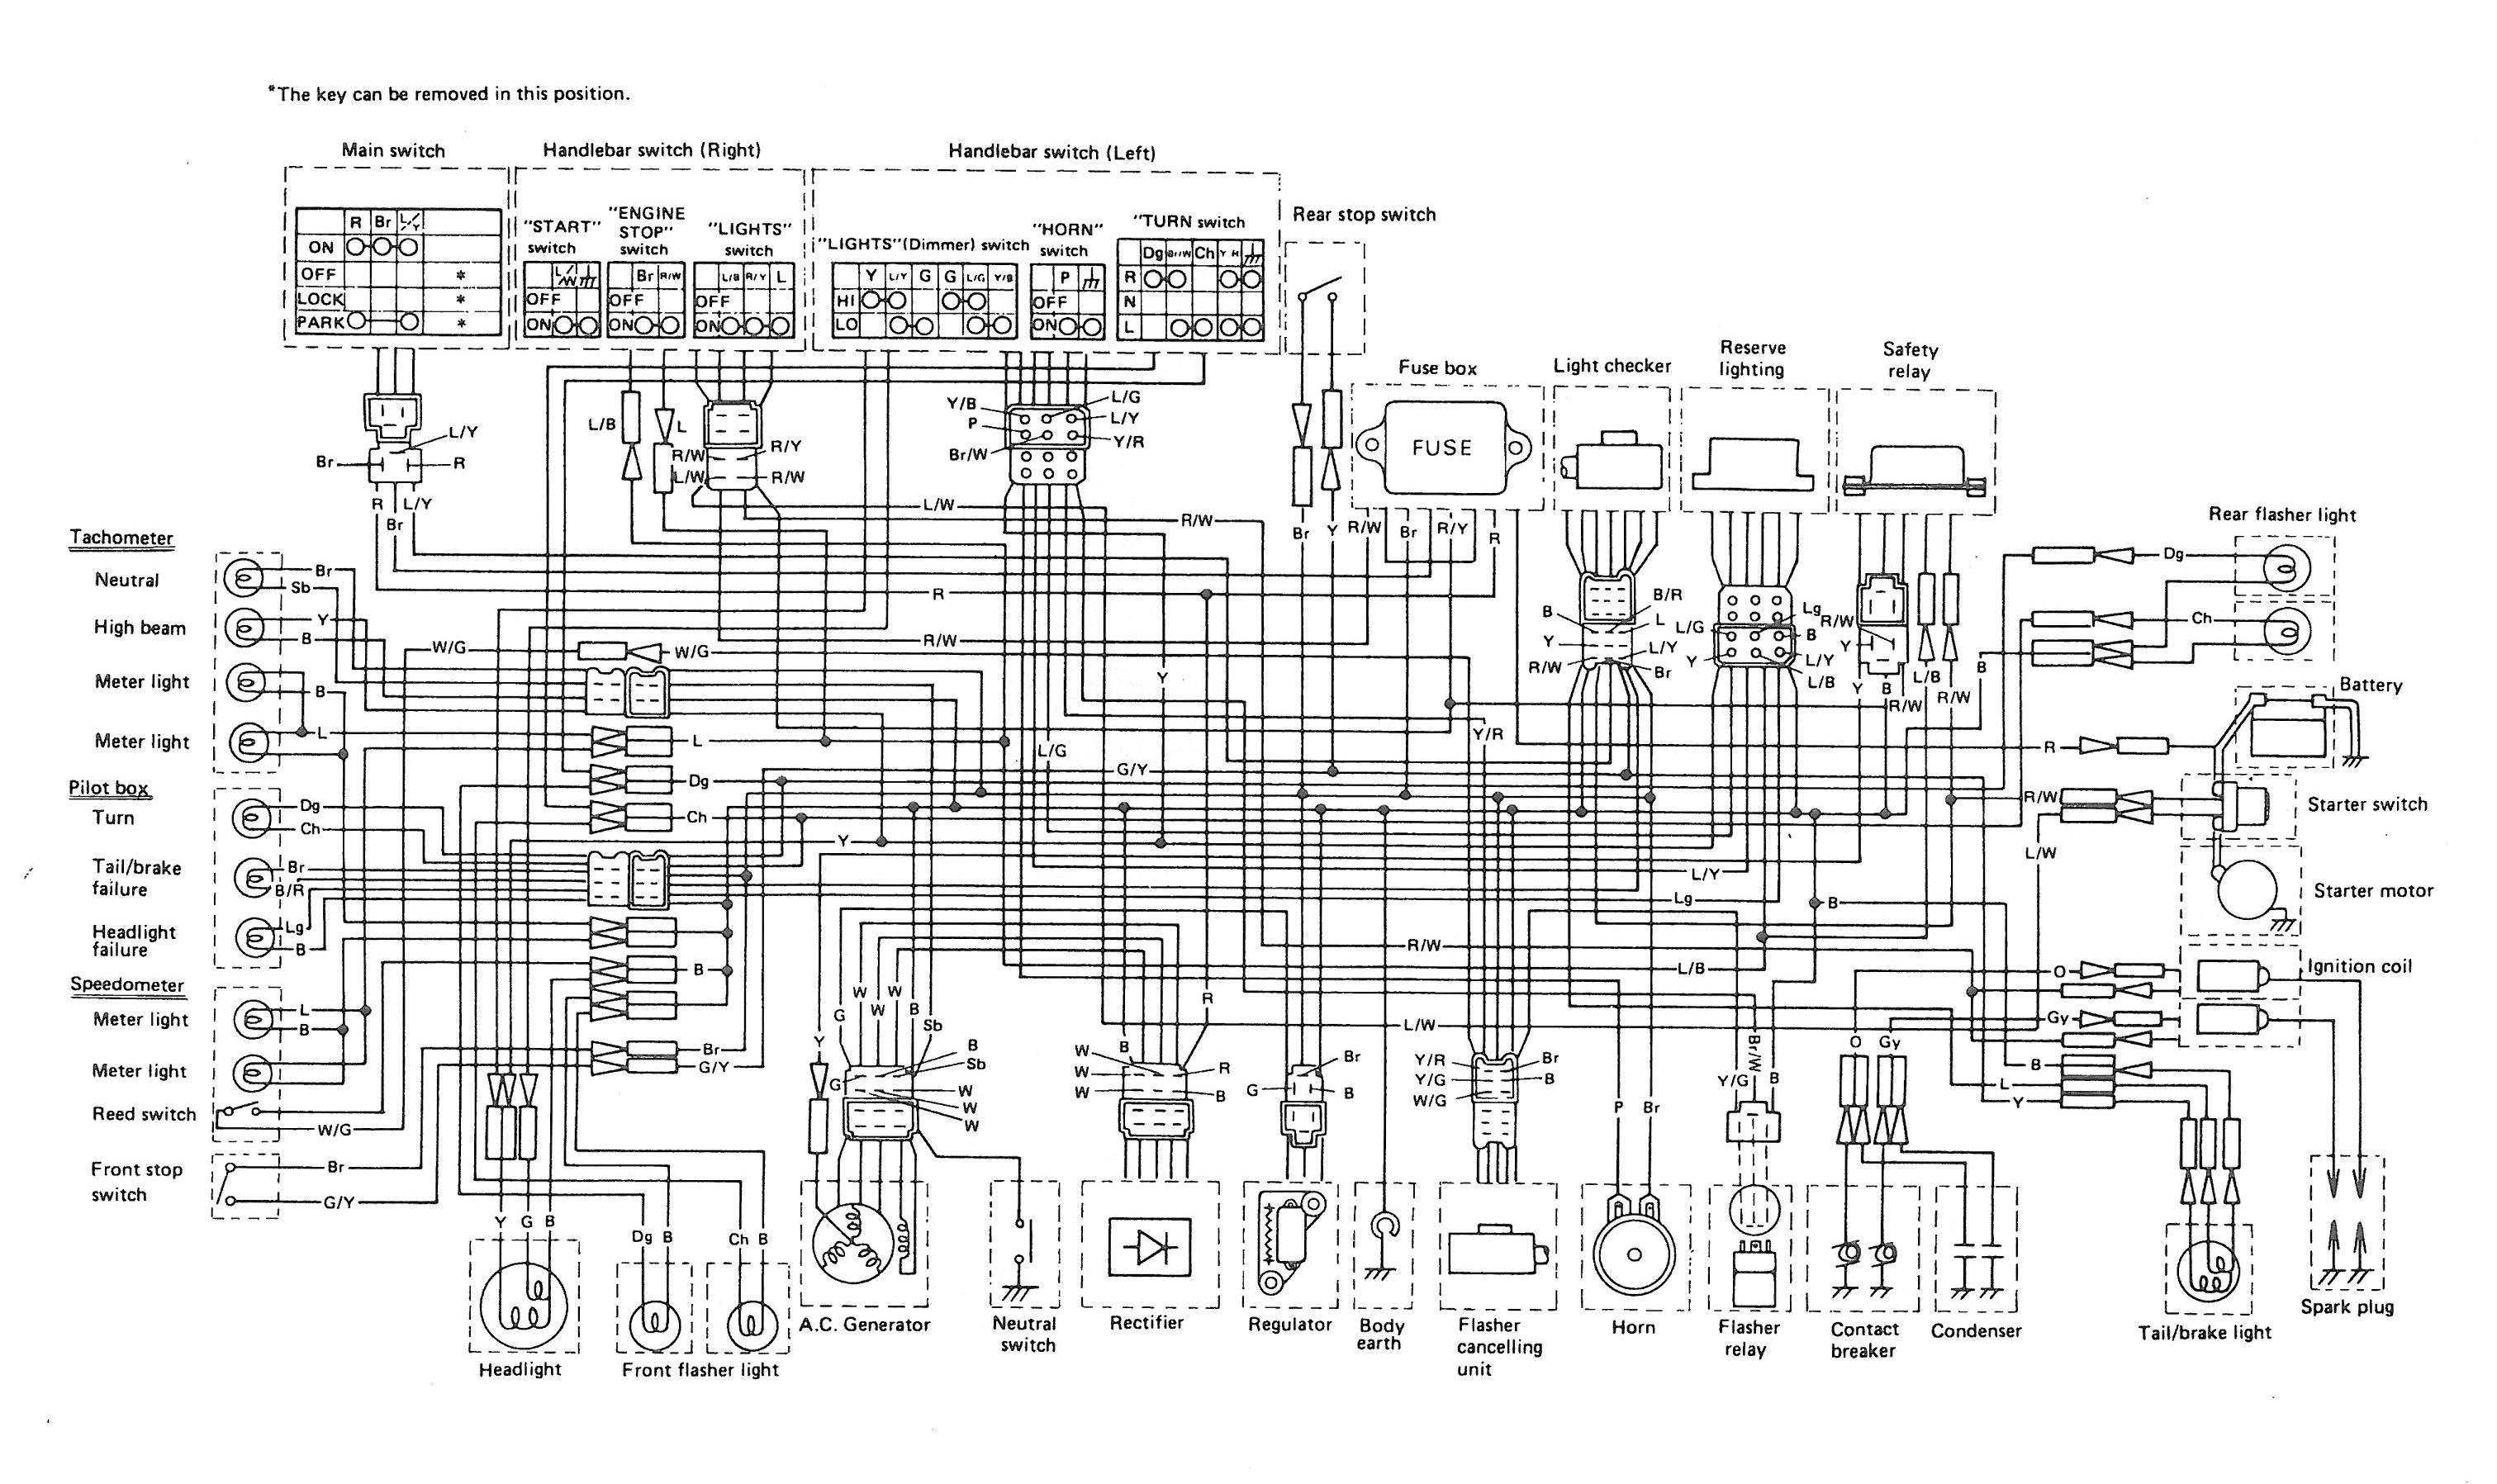 78 xsse wiring 6 1 yamaha xs400 wiring diagram yamaha rd200 wiring diagram \u2022 free 1979 Yamaha It 400 Enduro at cos-gaming.co